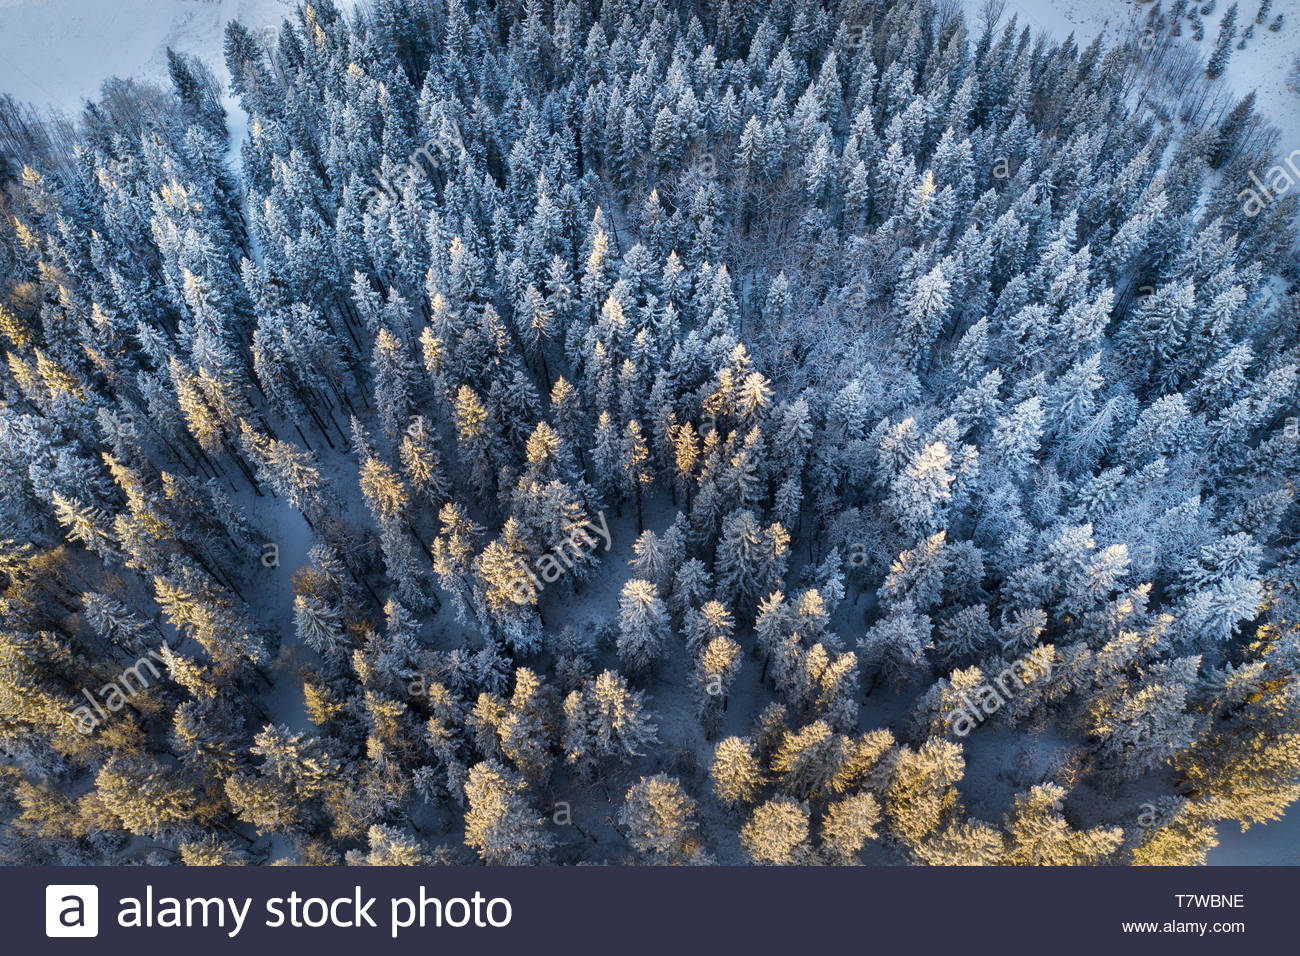 Drone point of view snow covered treetops in forest, Alberta, Canada - Stock Image